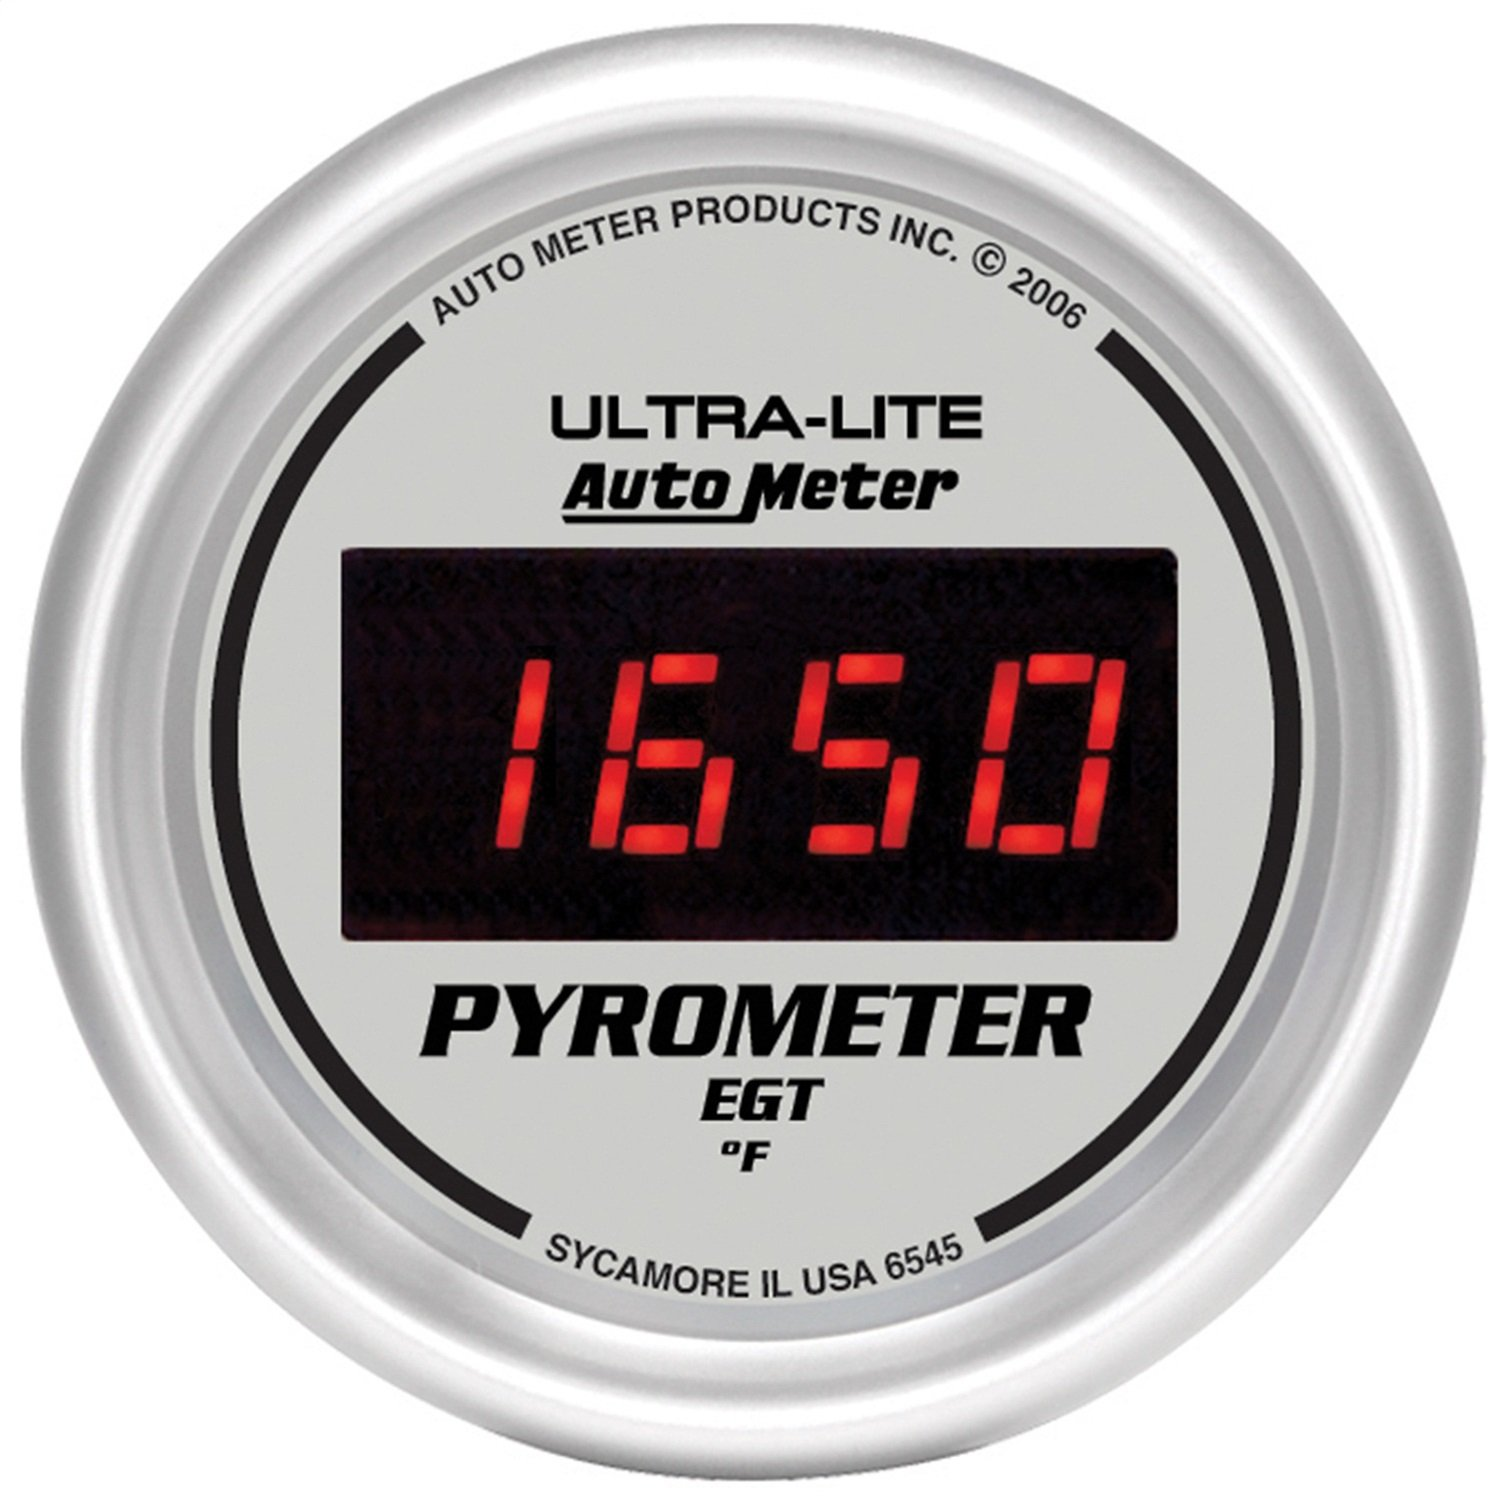 Exhaust Gas Temperature Auto Meter 6545 Ultra-Lite Digital 2-1//16 0-2000 F Digital Pyrometer E.G.T.